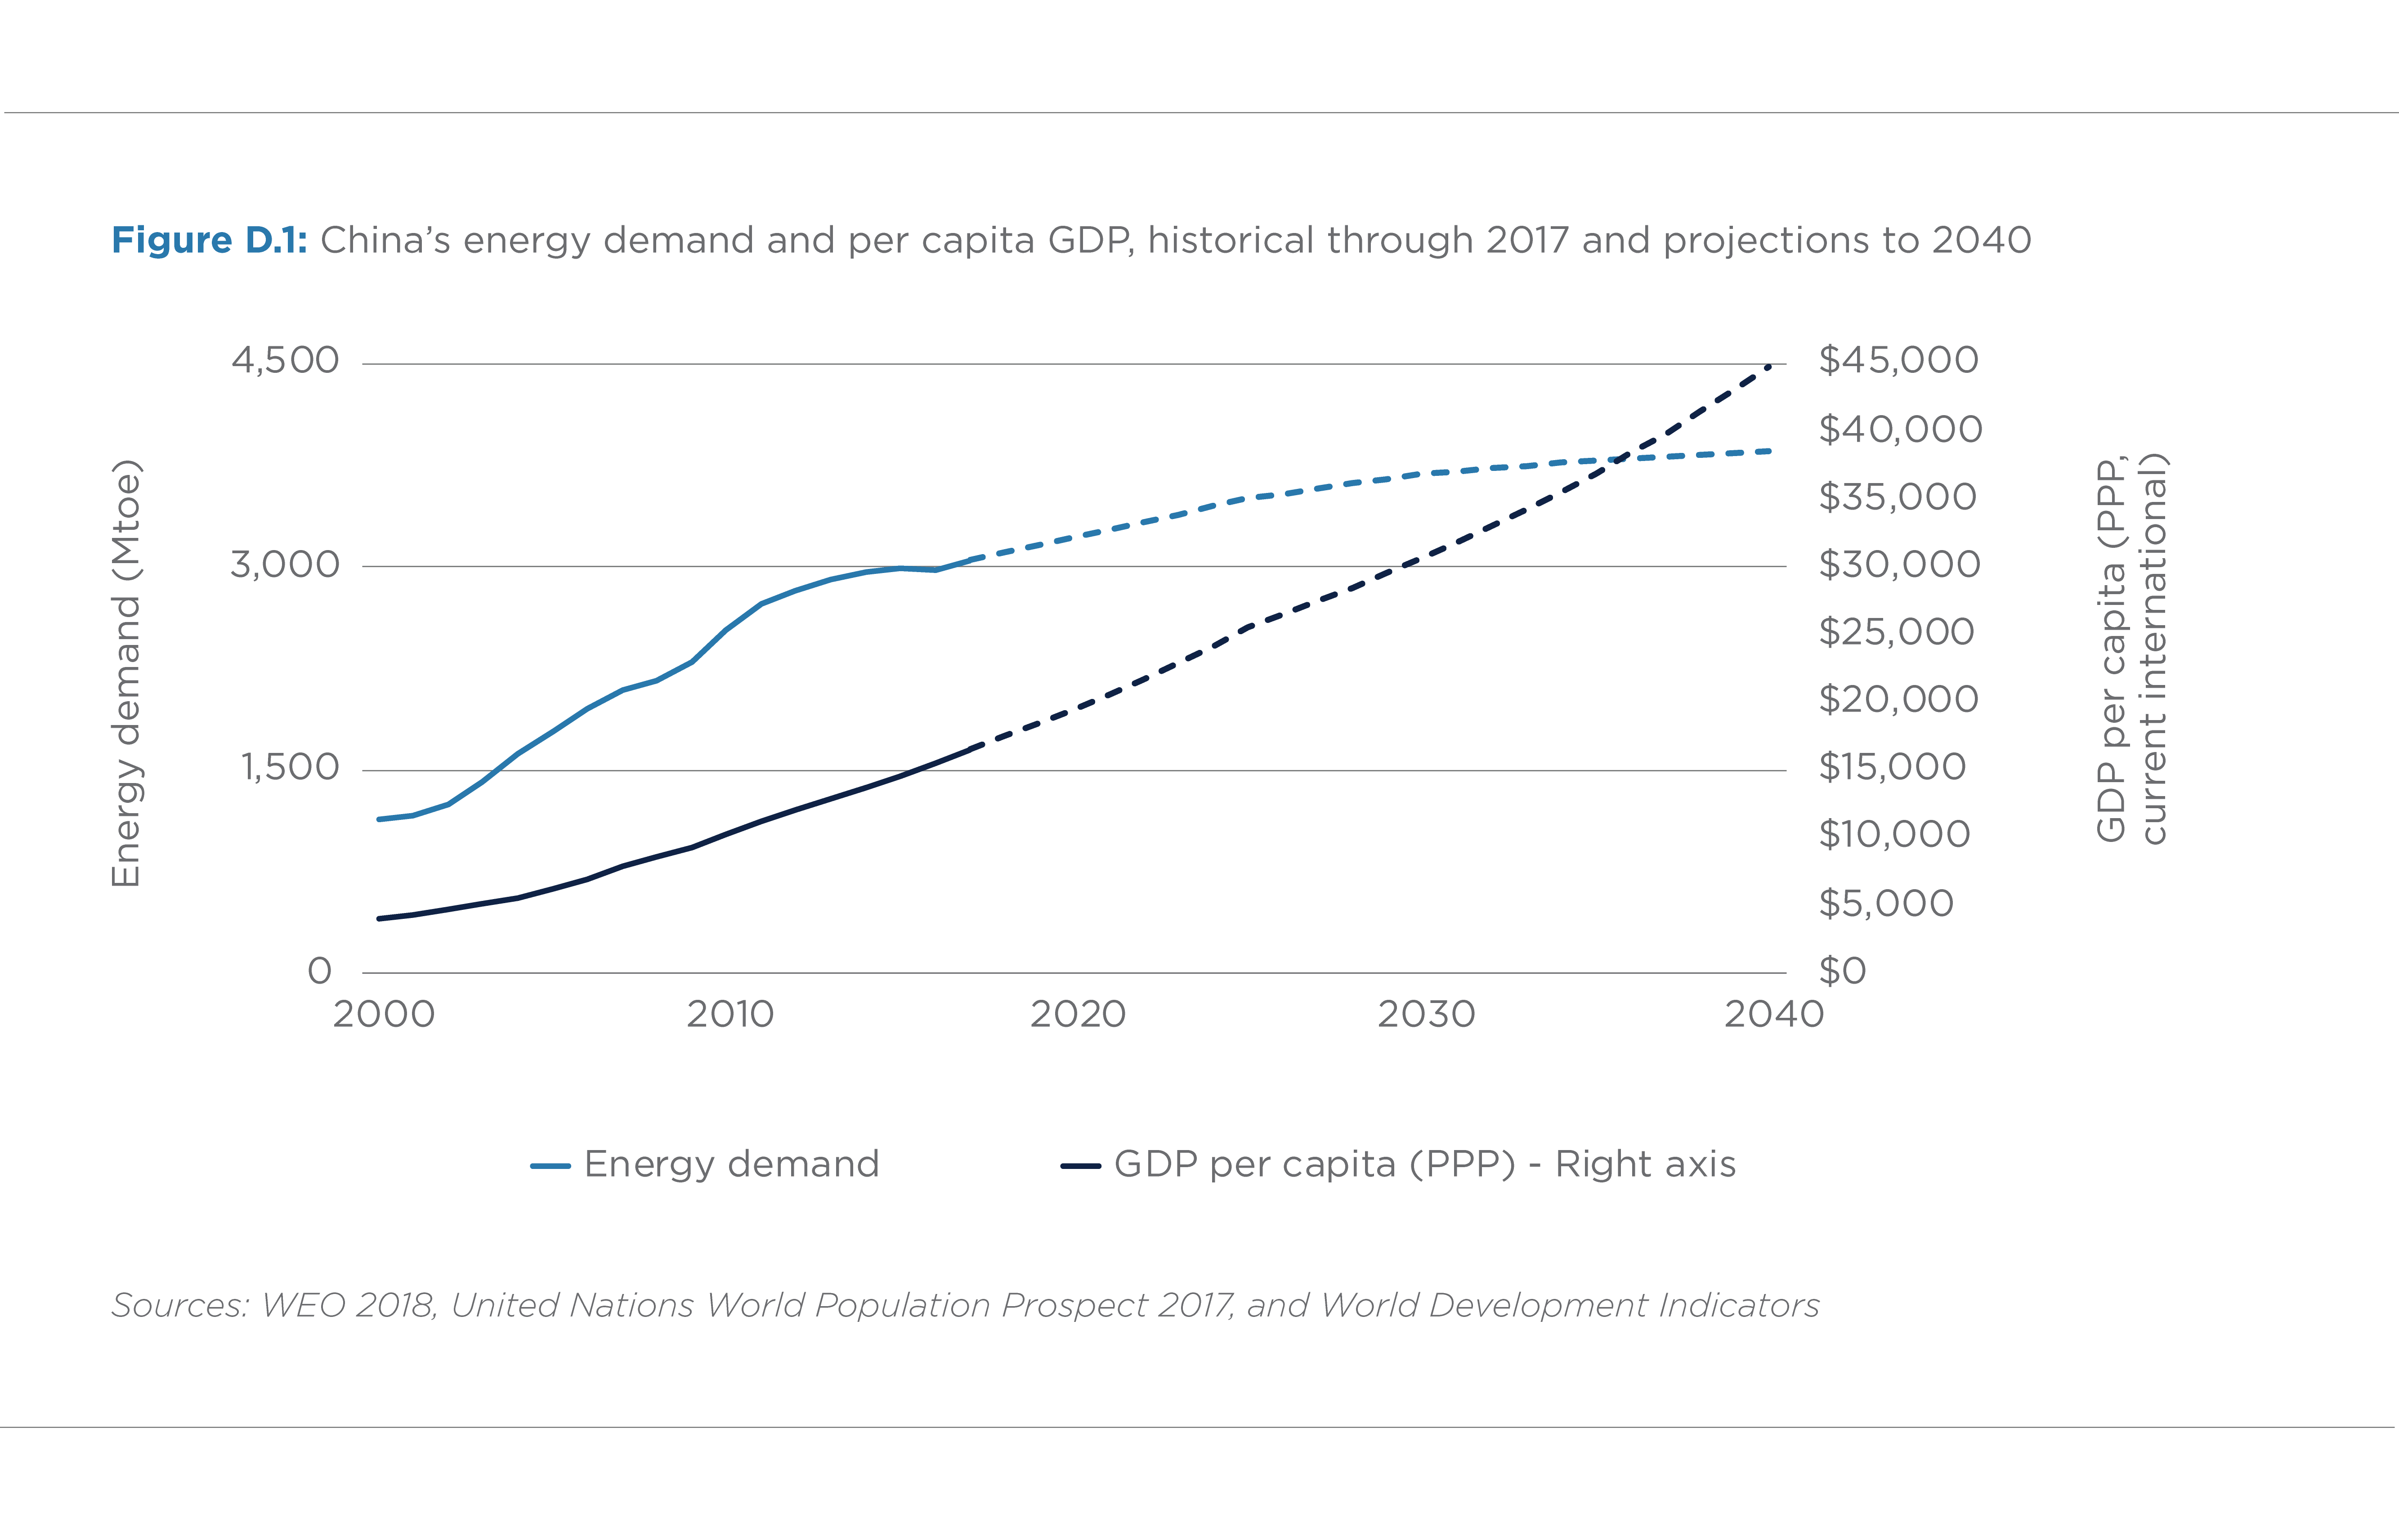 FIGURE D.1. CHINA'S ENERGY DEMAND AND PER CAPITA GDP (HISTORICAL THRU 2017 AND PROJECTIONS TO 2040)